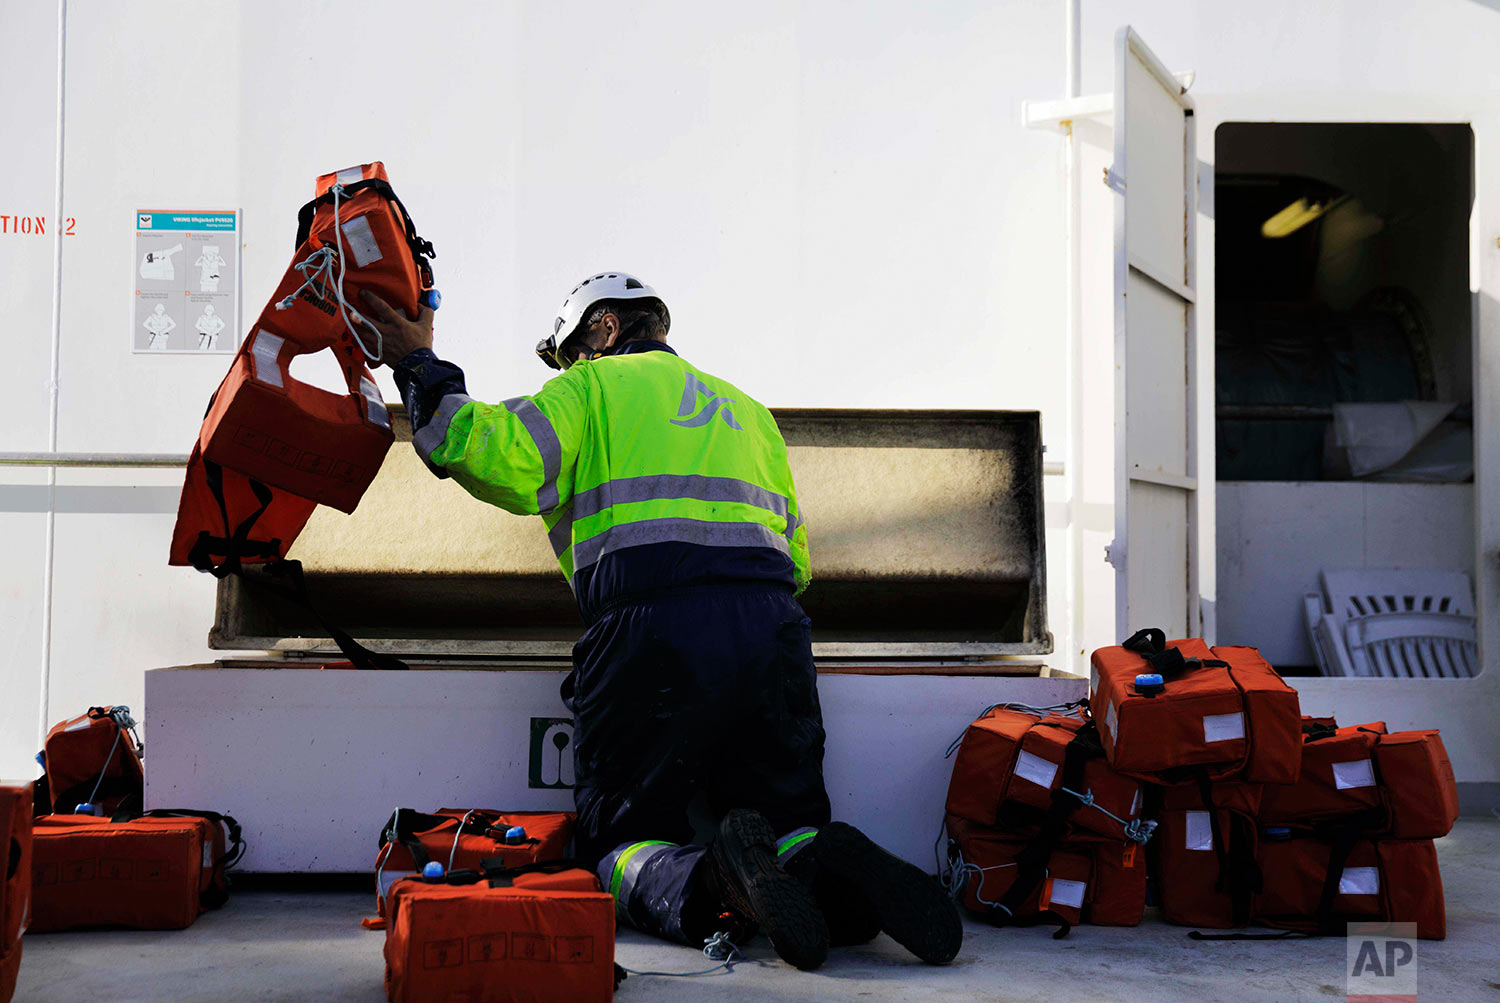 Able seaman Auvo Sinkkonen puts away life vests after a safety drill aboard the Finnish icebreaker MSV Nordica as it sails the Northwest Passage through the Canadian Arctic Archipelago, Thursday, July 6, 2017. (AP Photo/David Goldman)